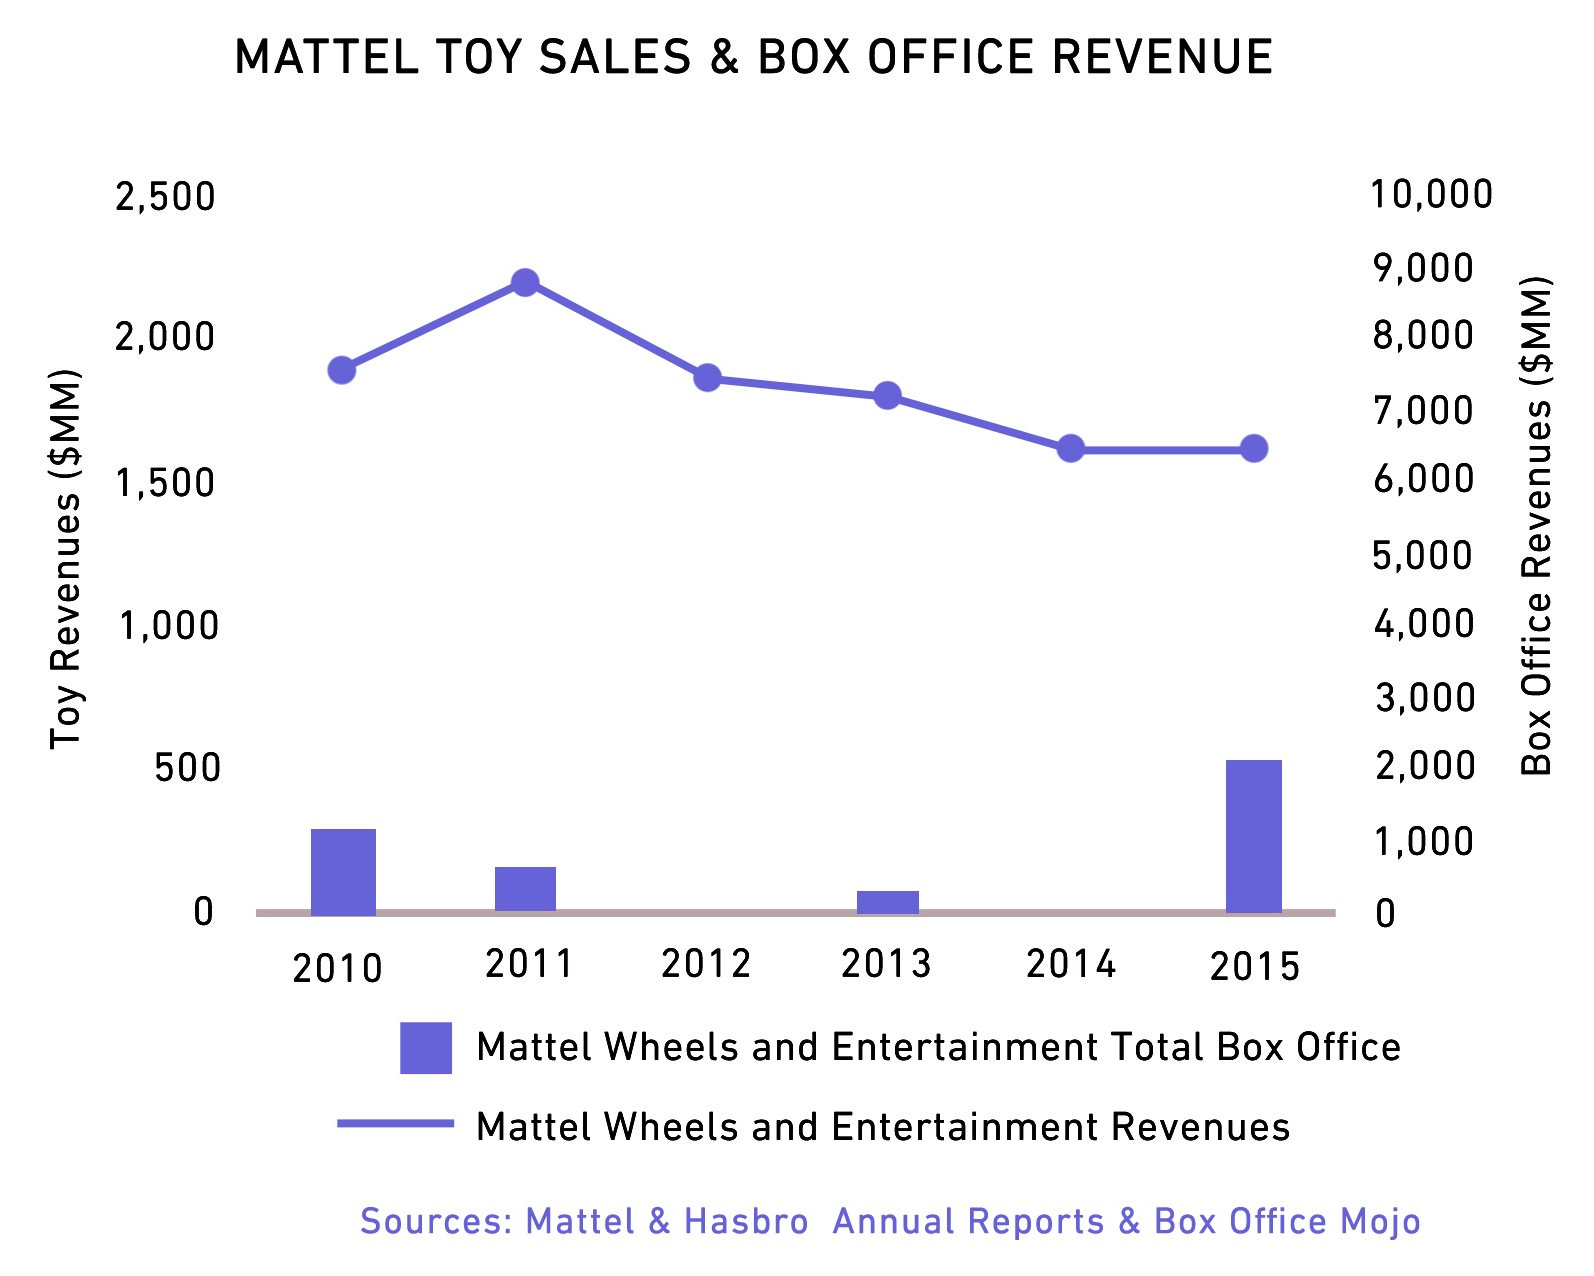 mattel in china Jingyu toy products, a toy factory based in the chinese city of shenzhen, has been accused of underpaying its employees and forcing them to work long hours, according to a report released by china labor watch (clw) on tuesday workers at the factory, which is a supplier to american toy companies.